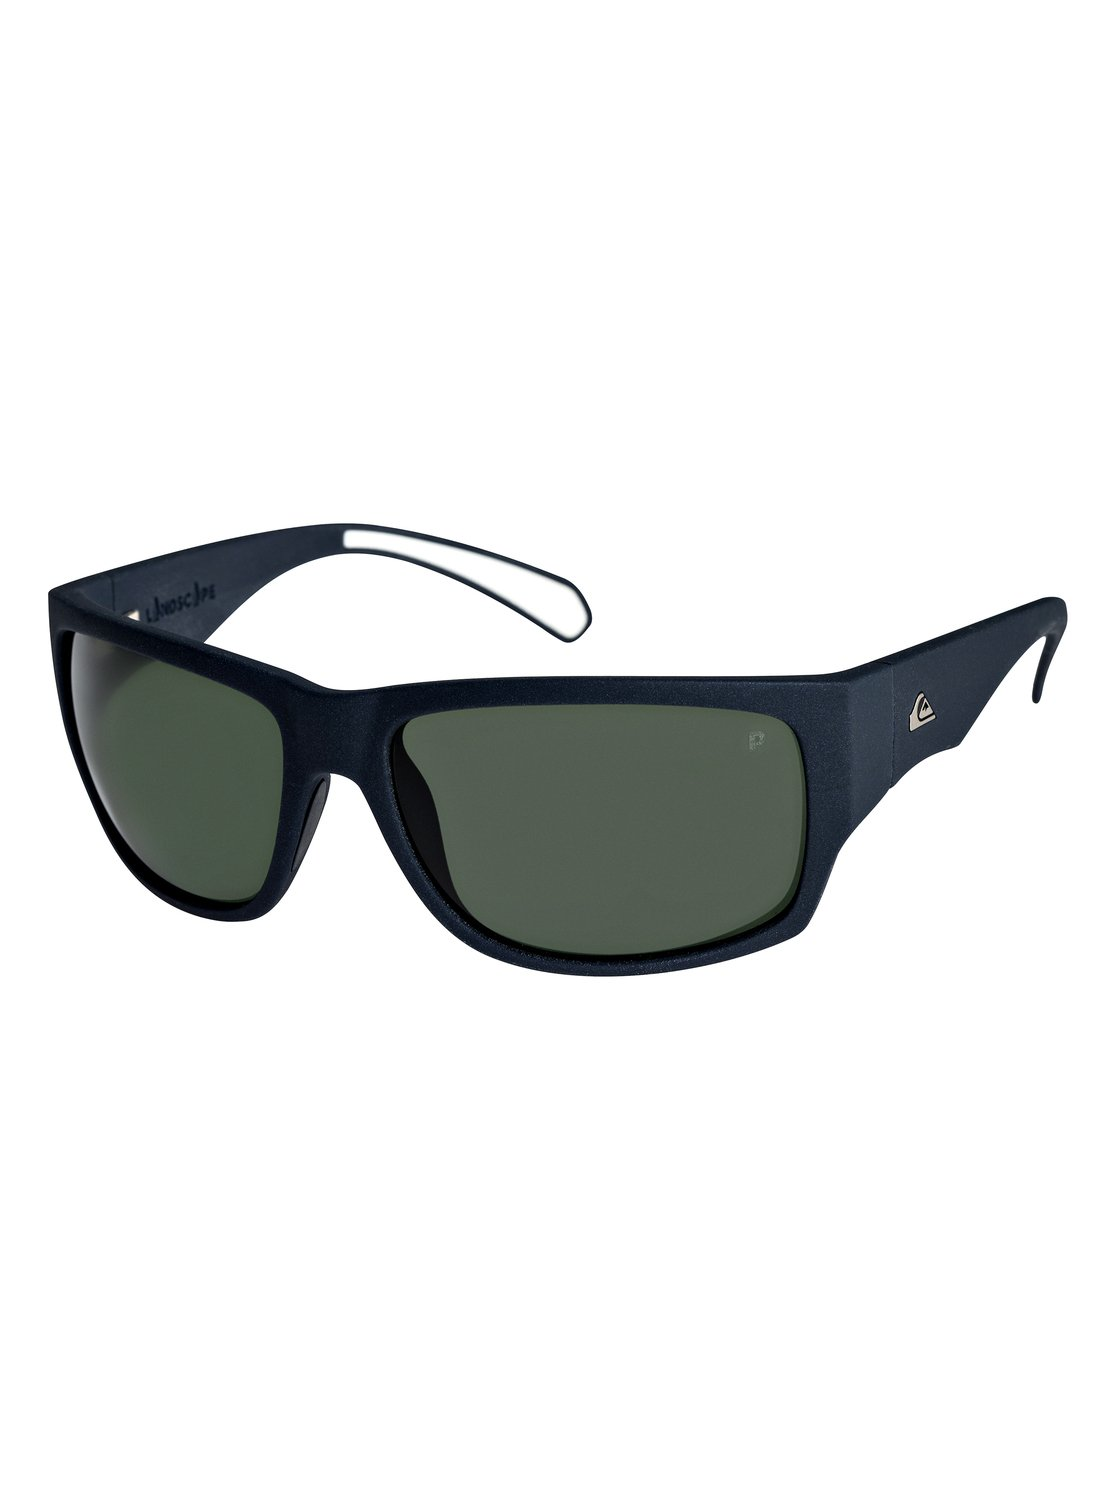 Landscape Polarized - Sunglasses